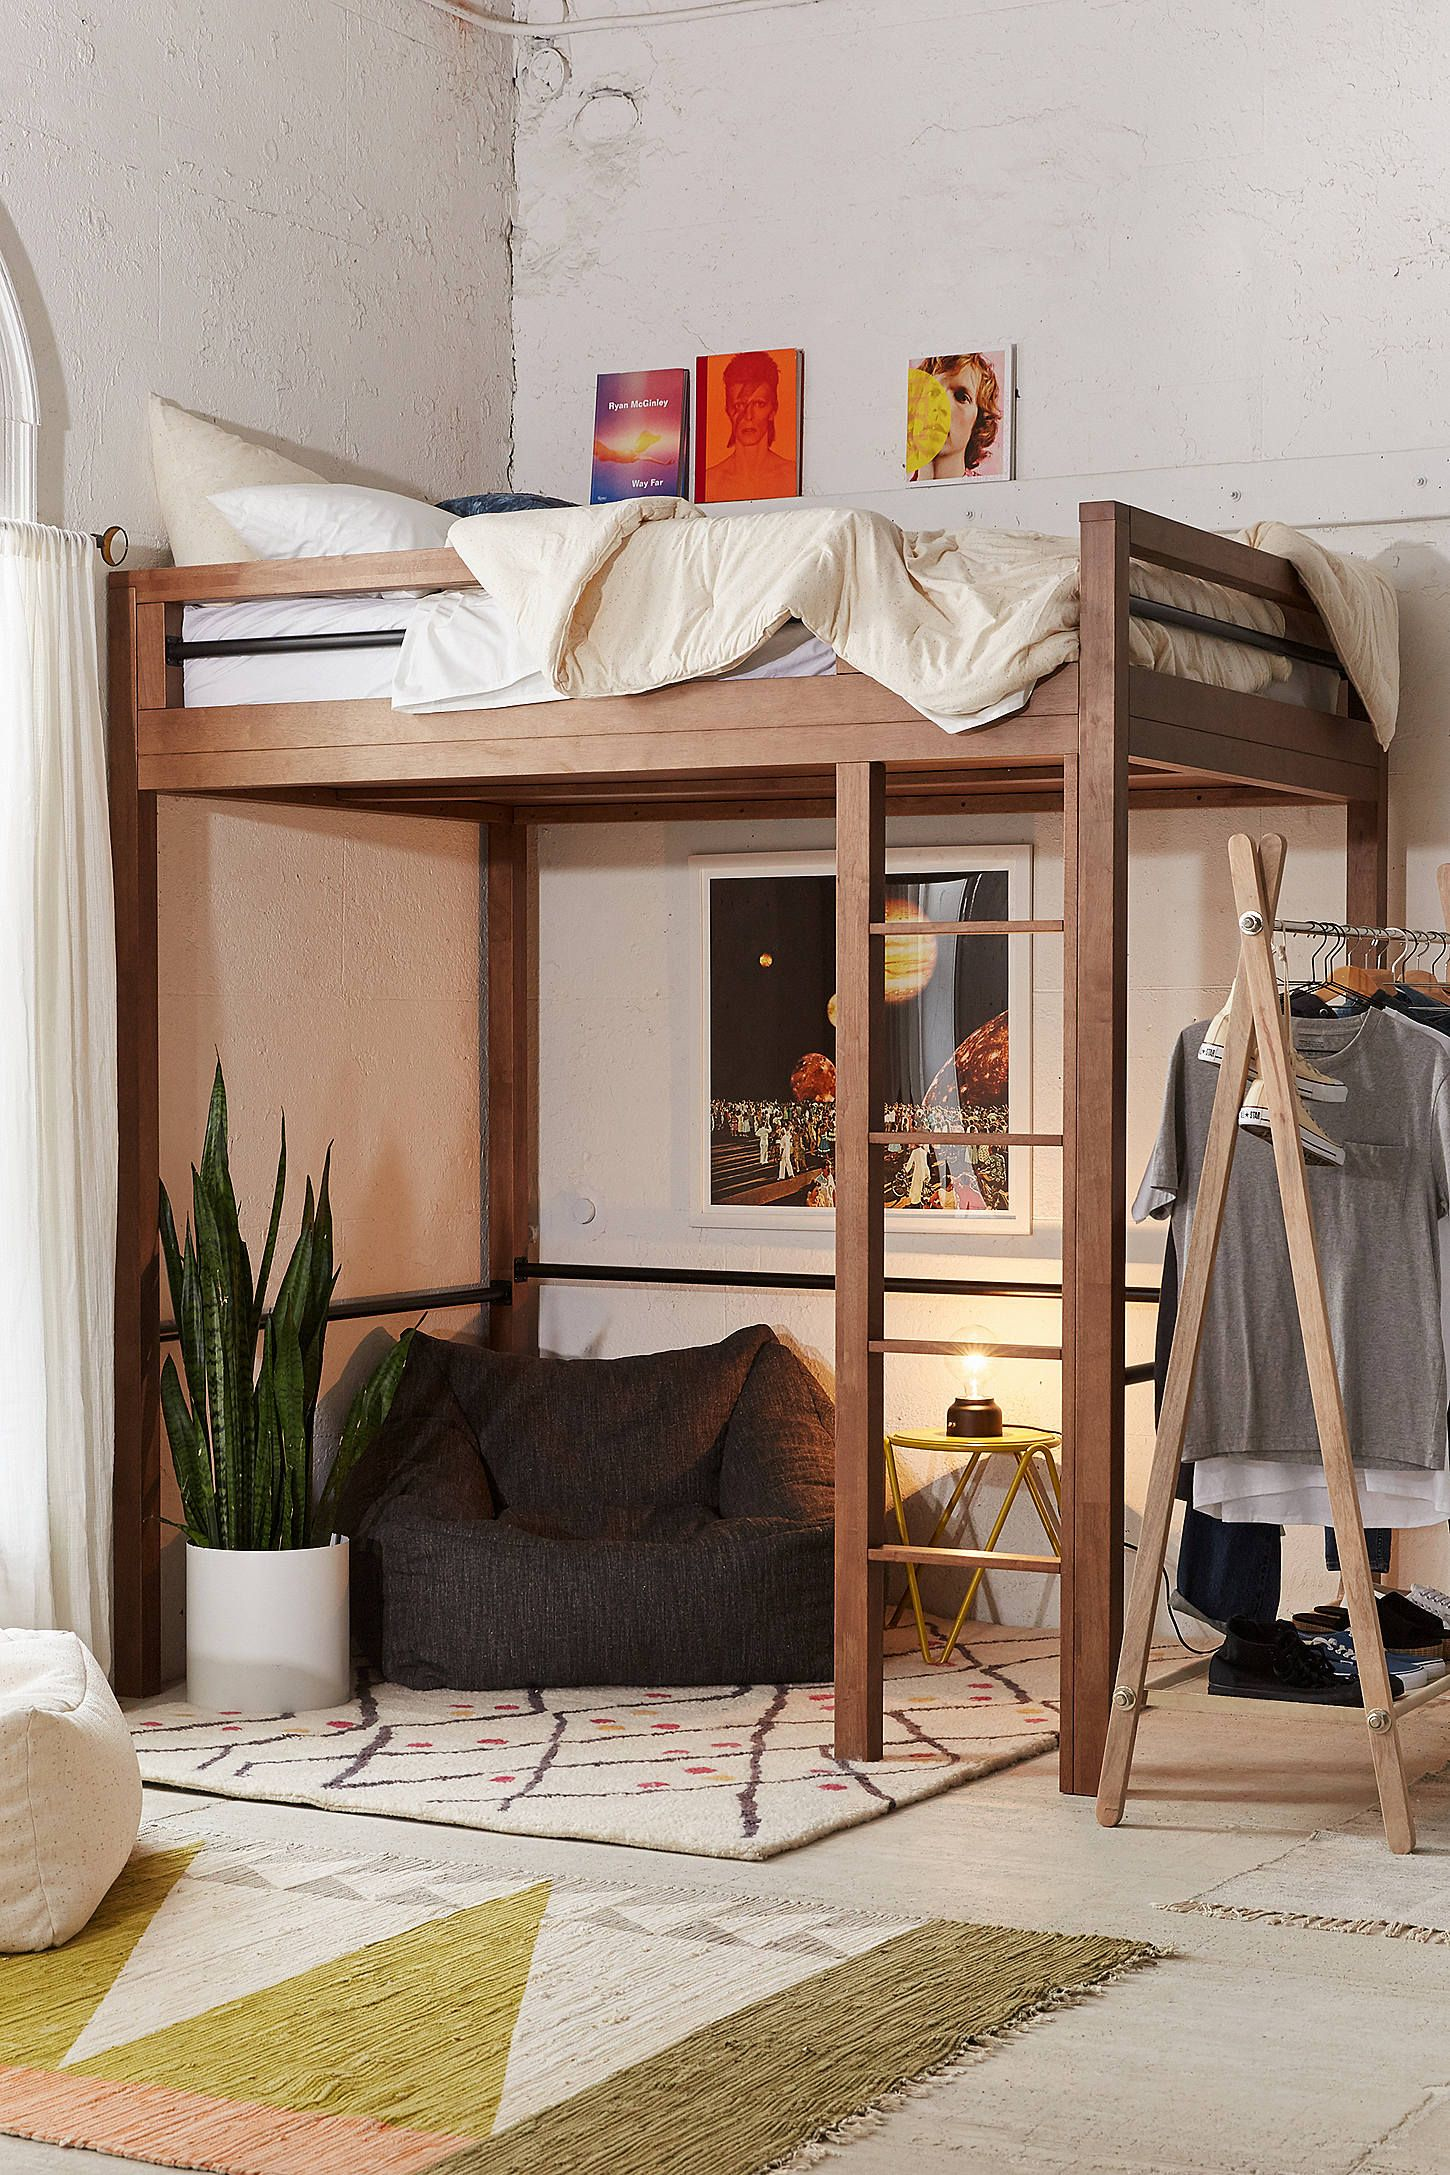 Urban Outfitters Fulton Loft Bed 1879.00 Adult loft bed